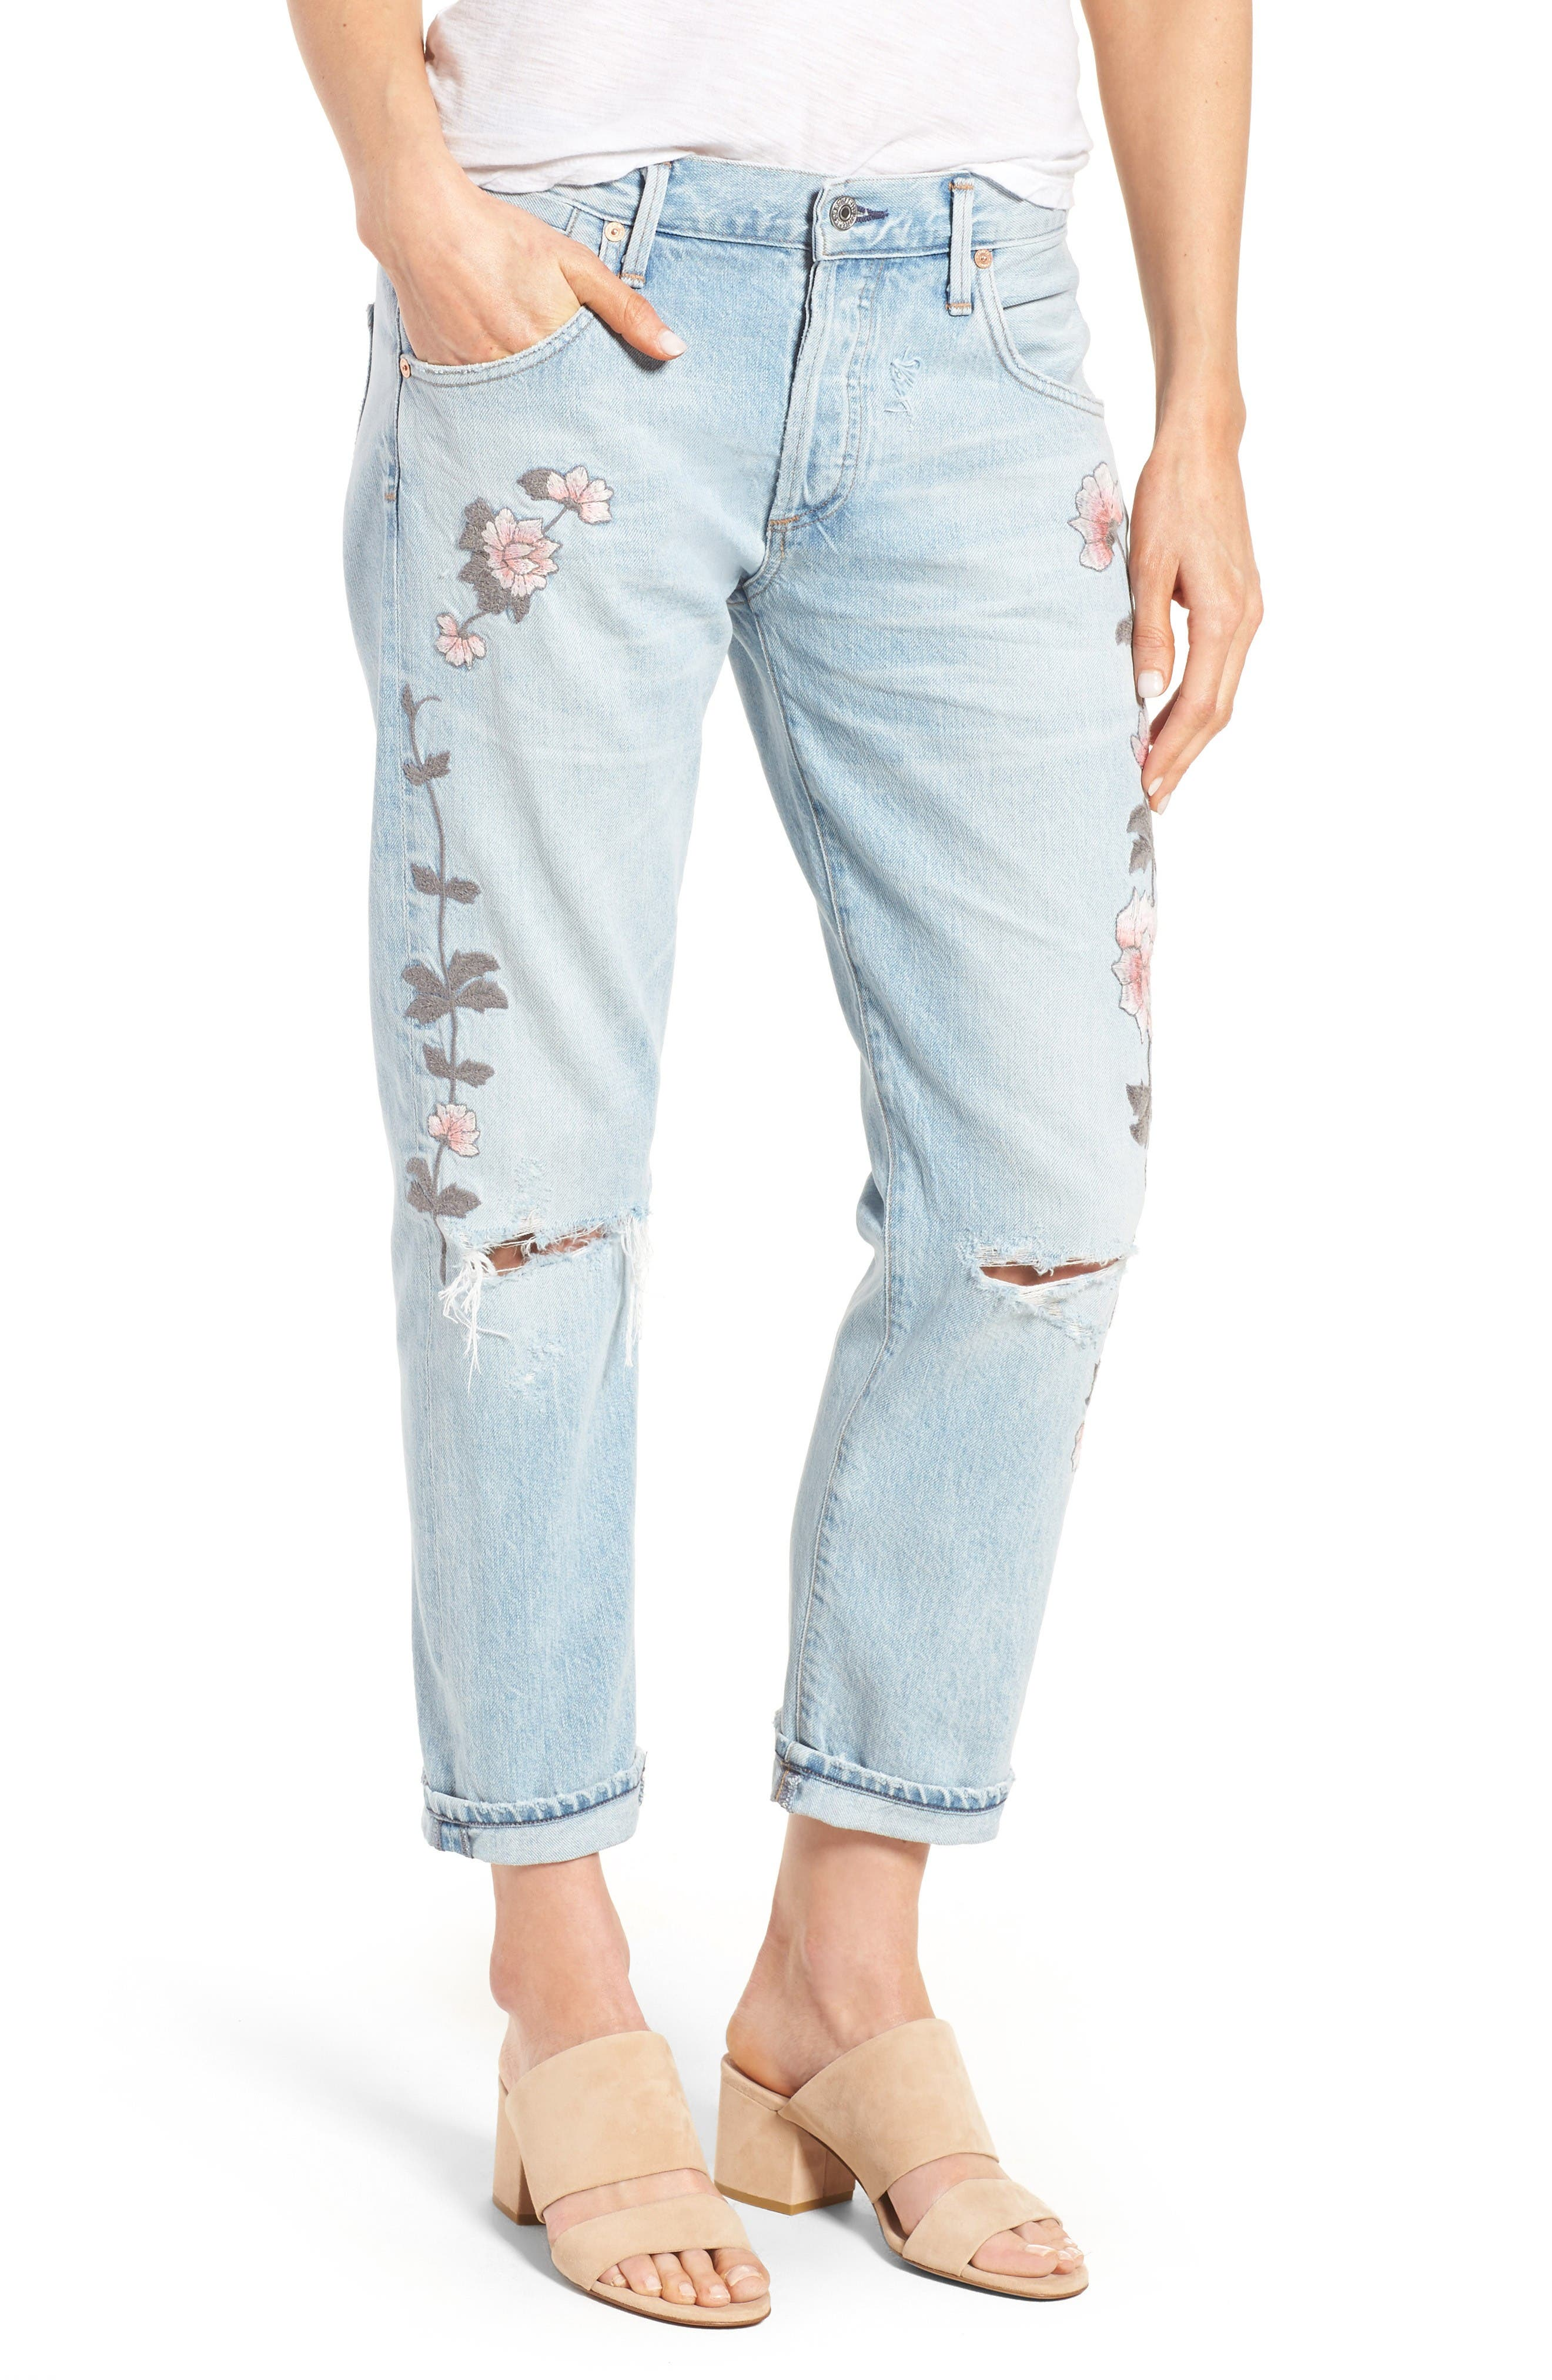 Alternate Image 1 Selected - Citizens of Humanity Emerson Slim Boyfriend Jeans (Distressed Rock on Roses)